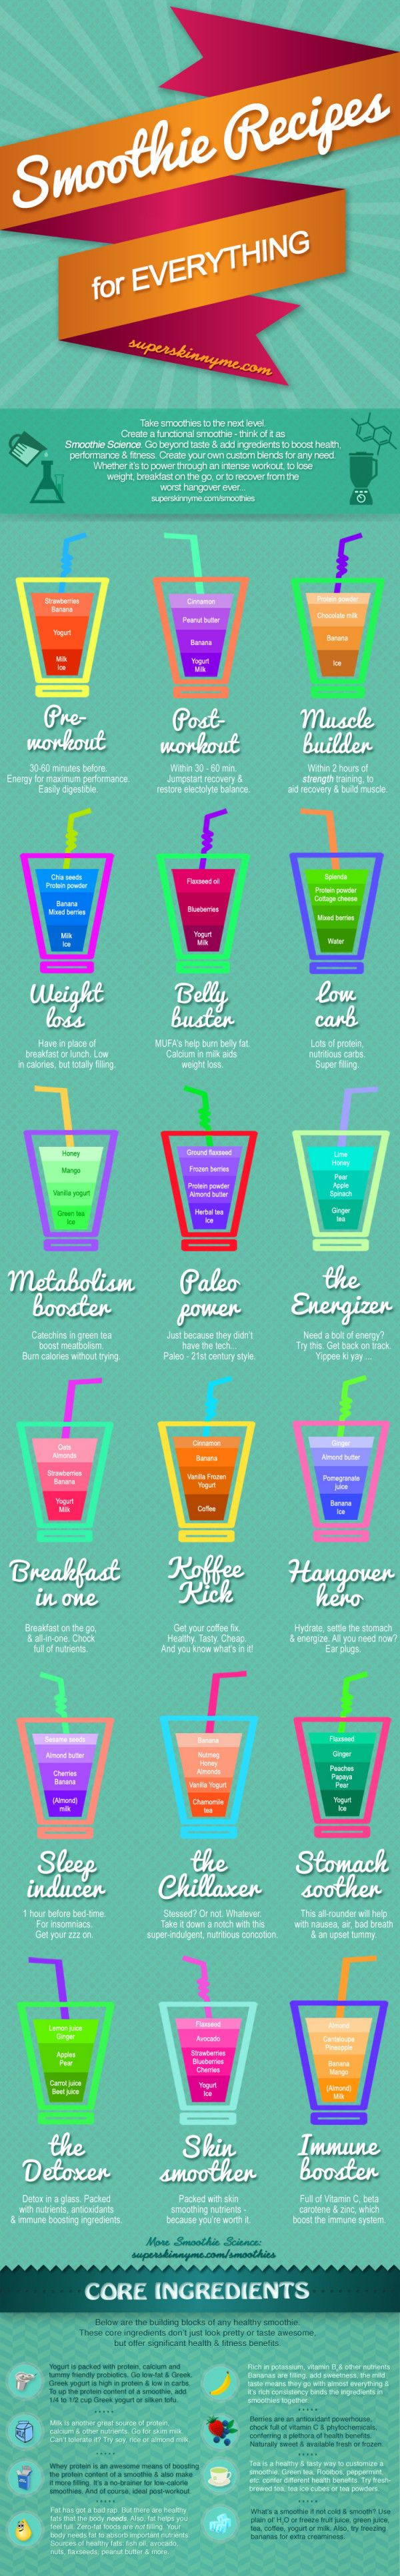 Smoothie recipes for everything [infographic]. I liked the smooth colors of each cup to show the ingredients.